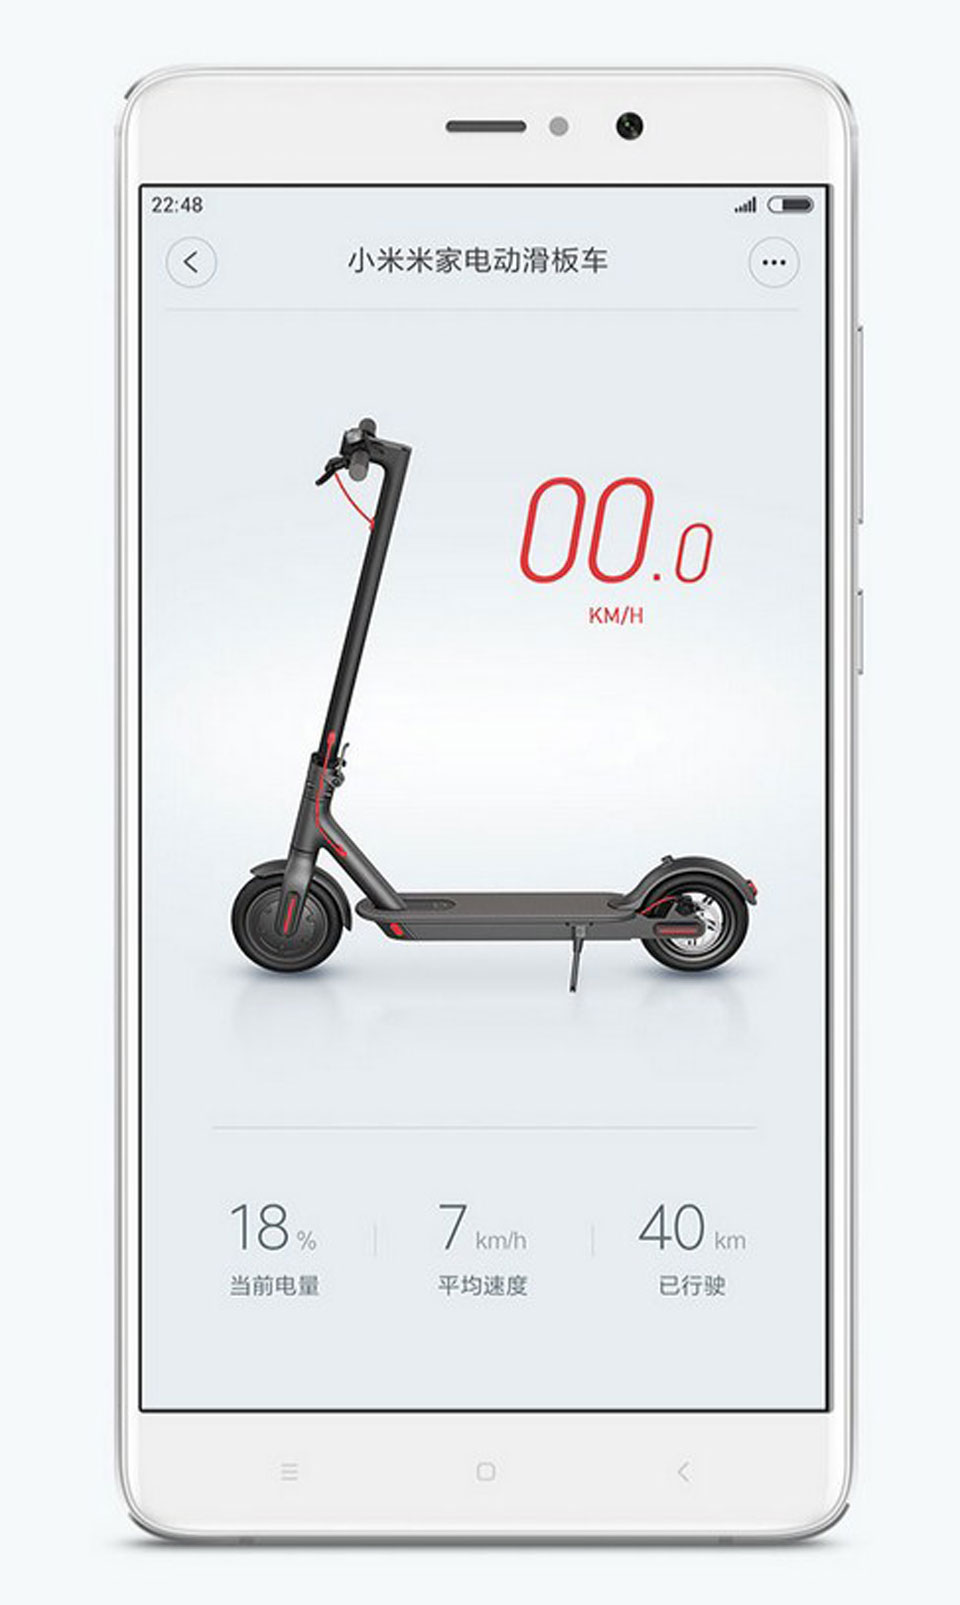 Mi Electric Scooter смартфон